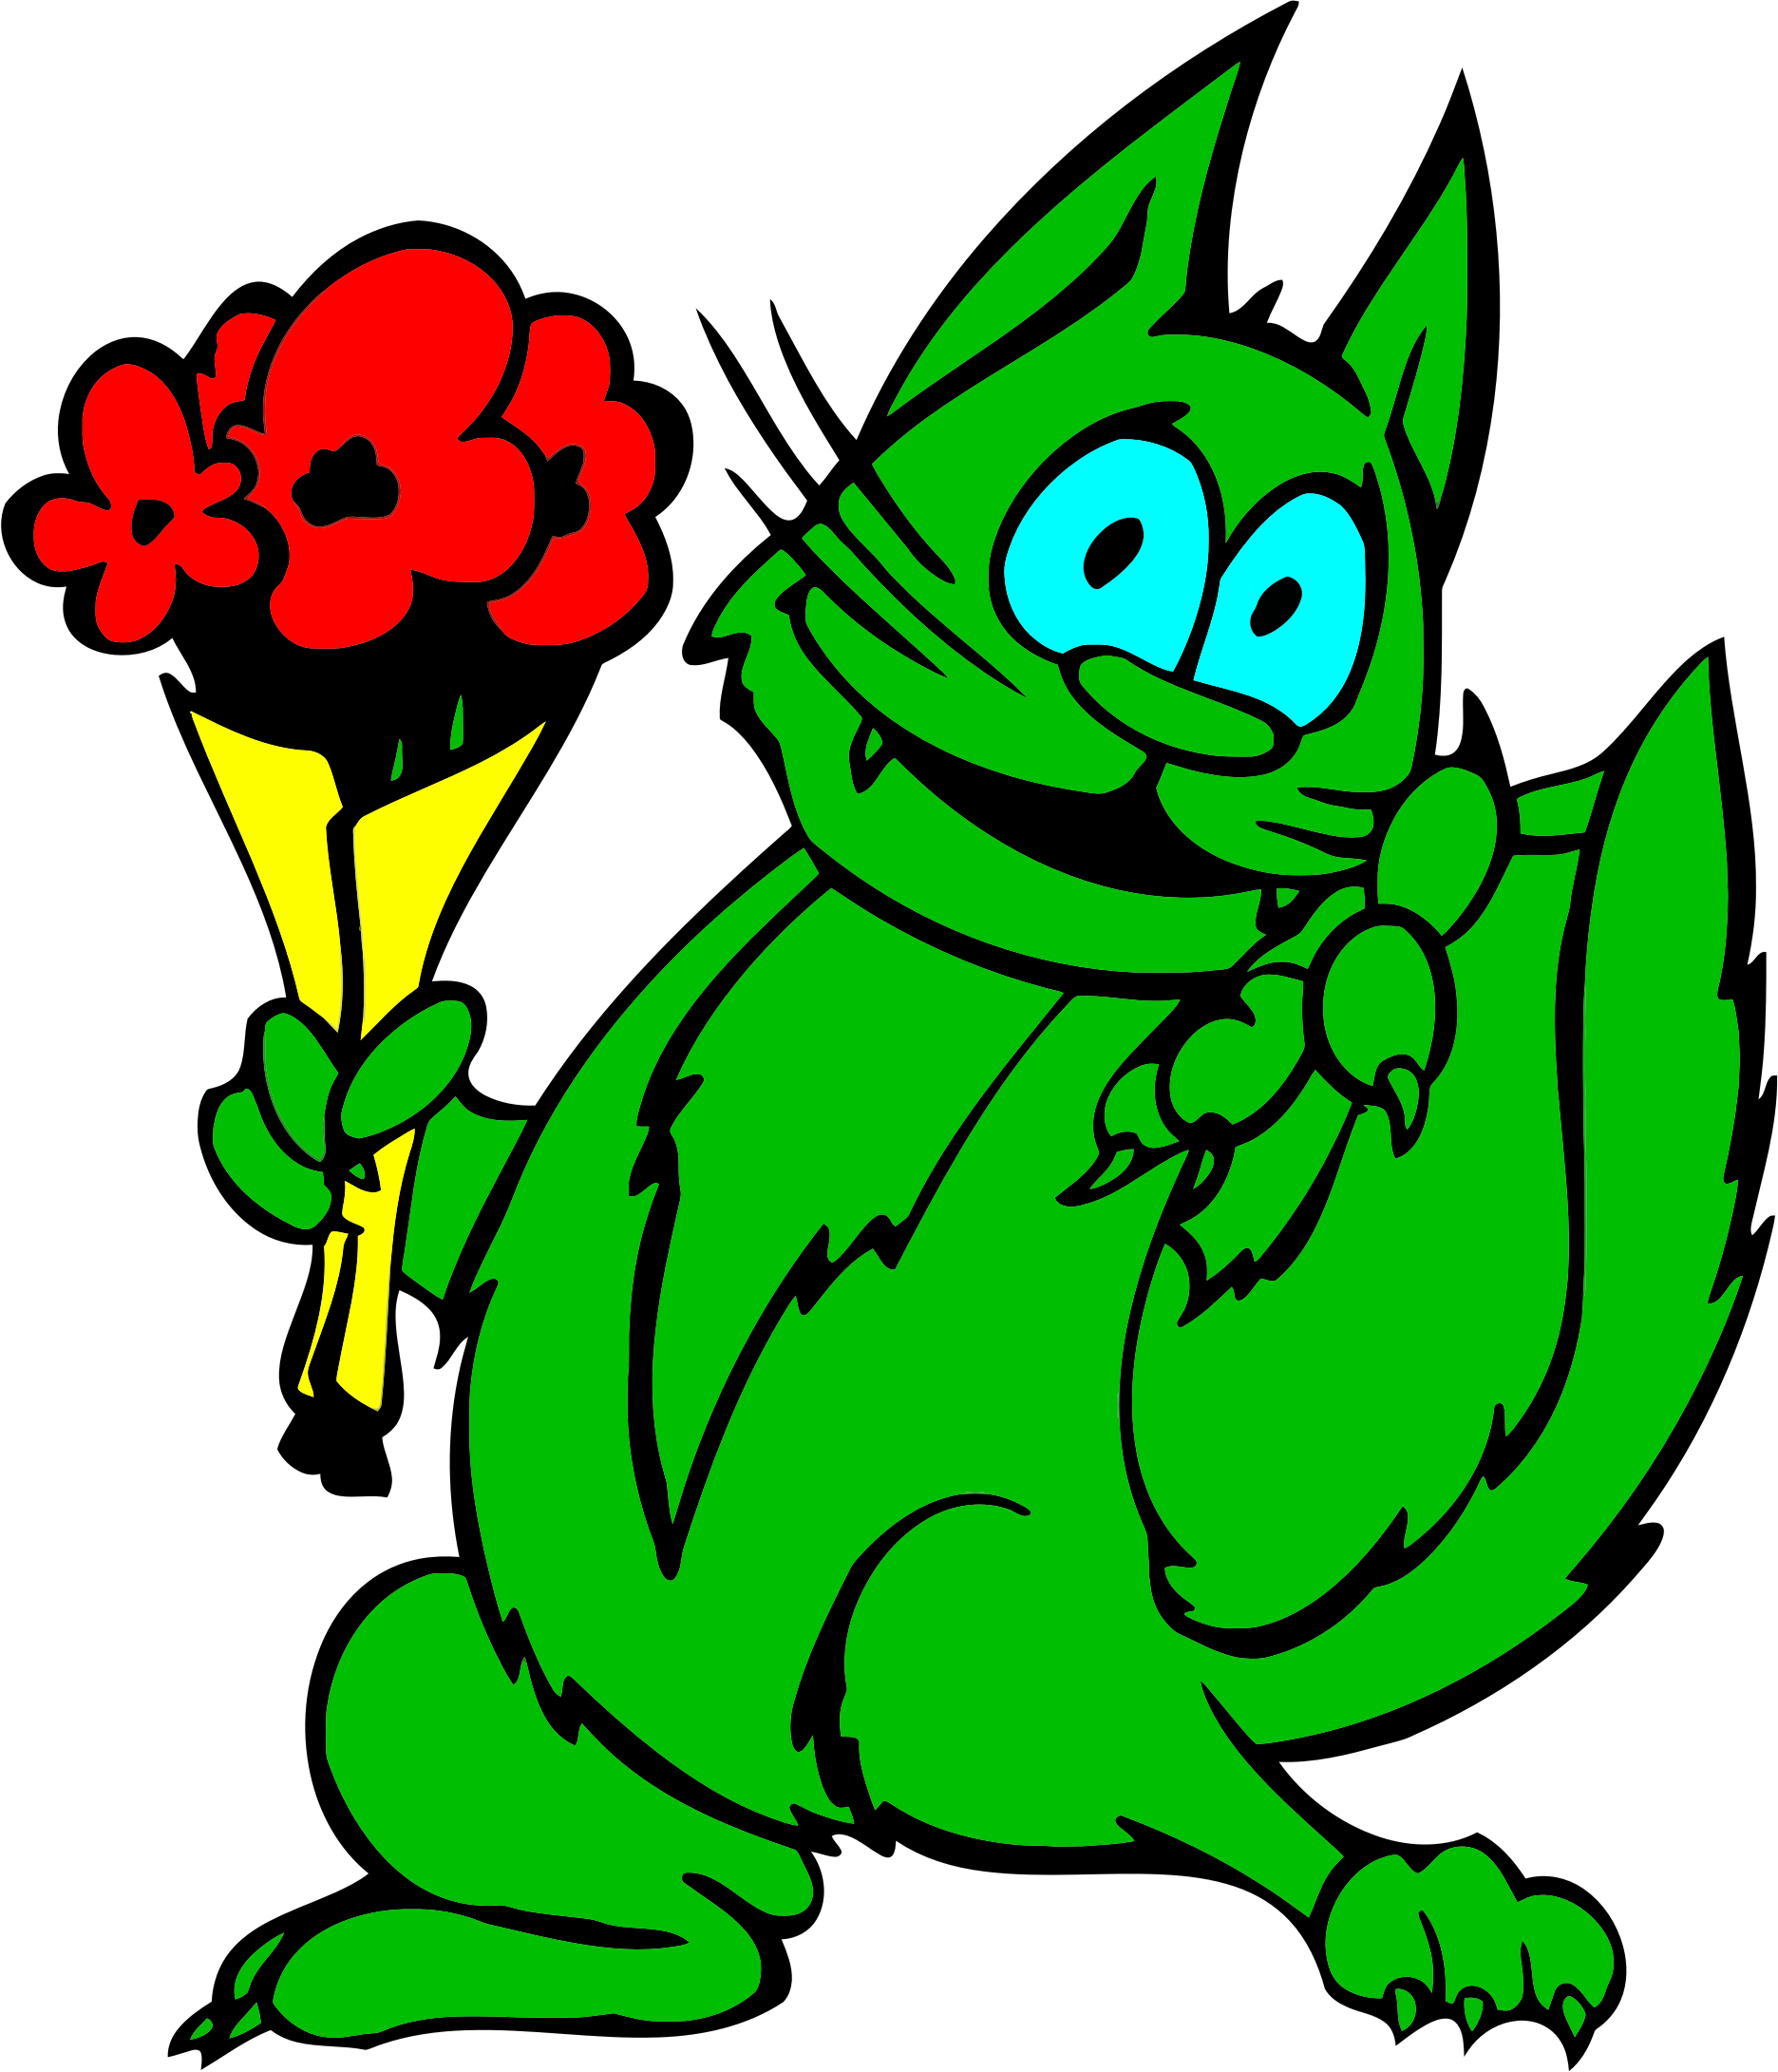 Green Cat With Flowers by GDJ